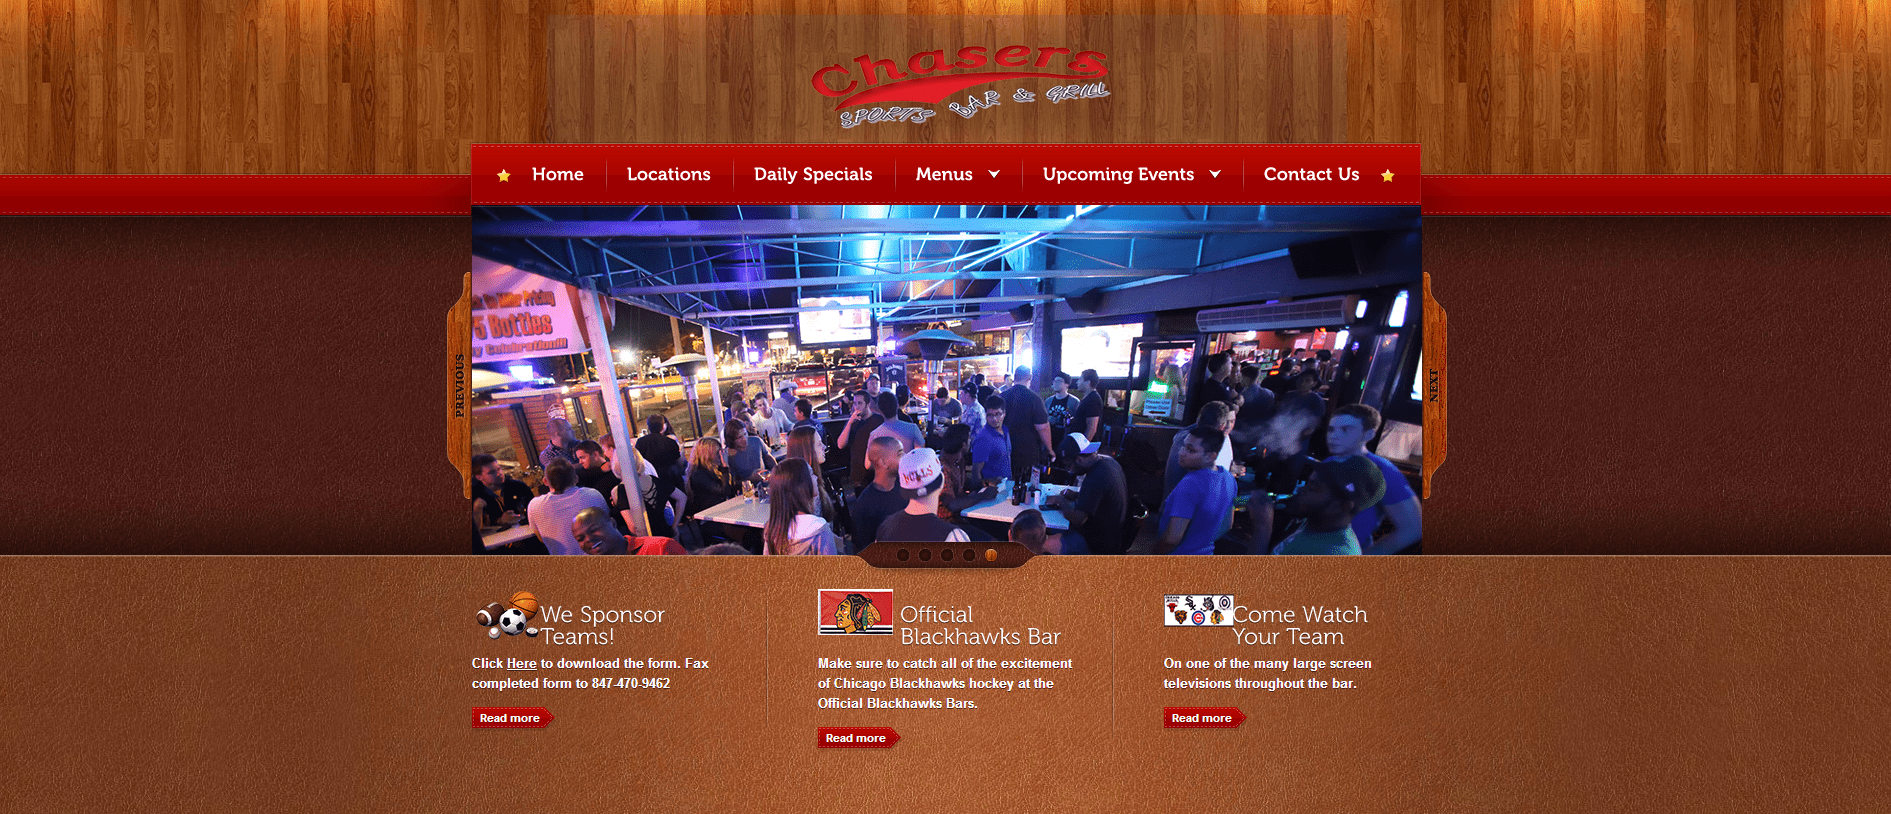 chasers-bar-and-grill